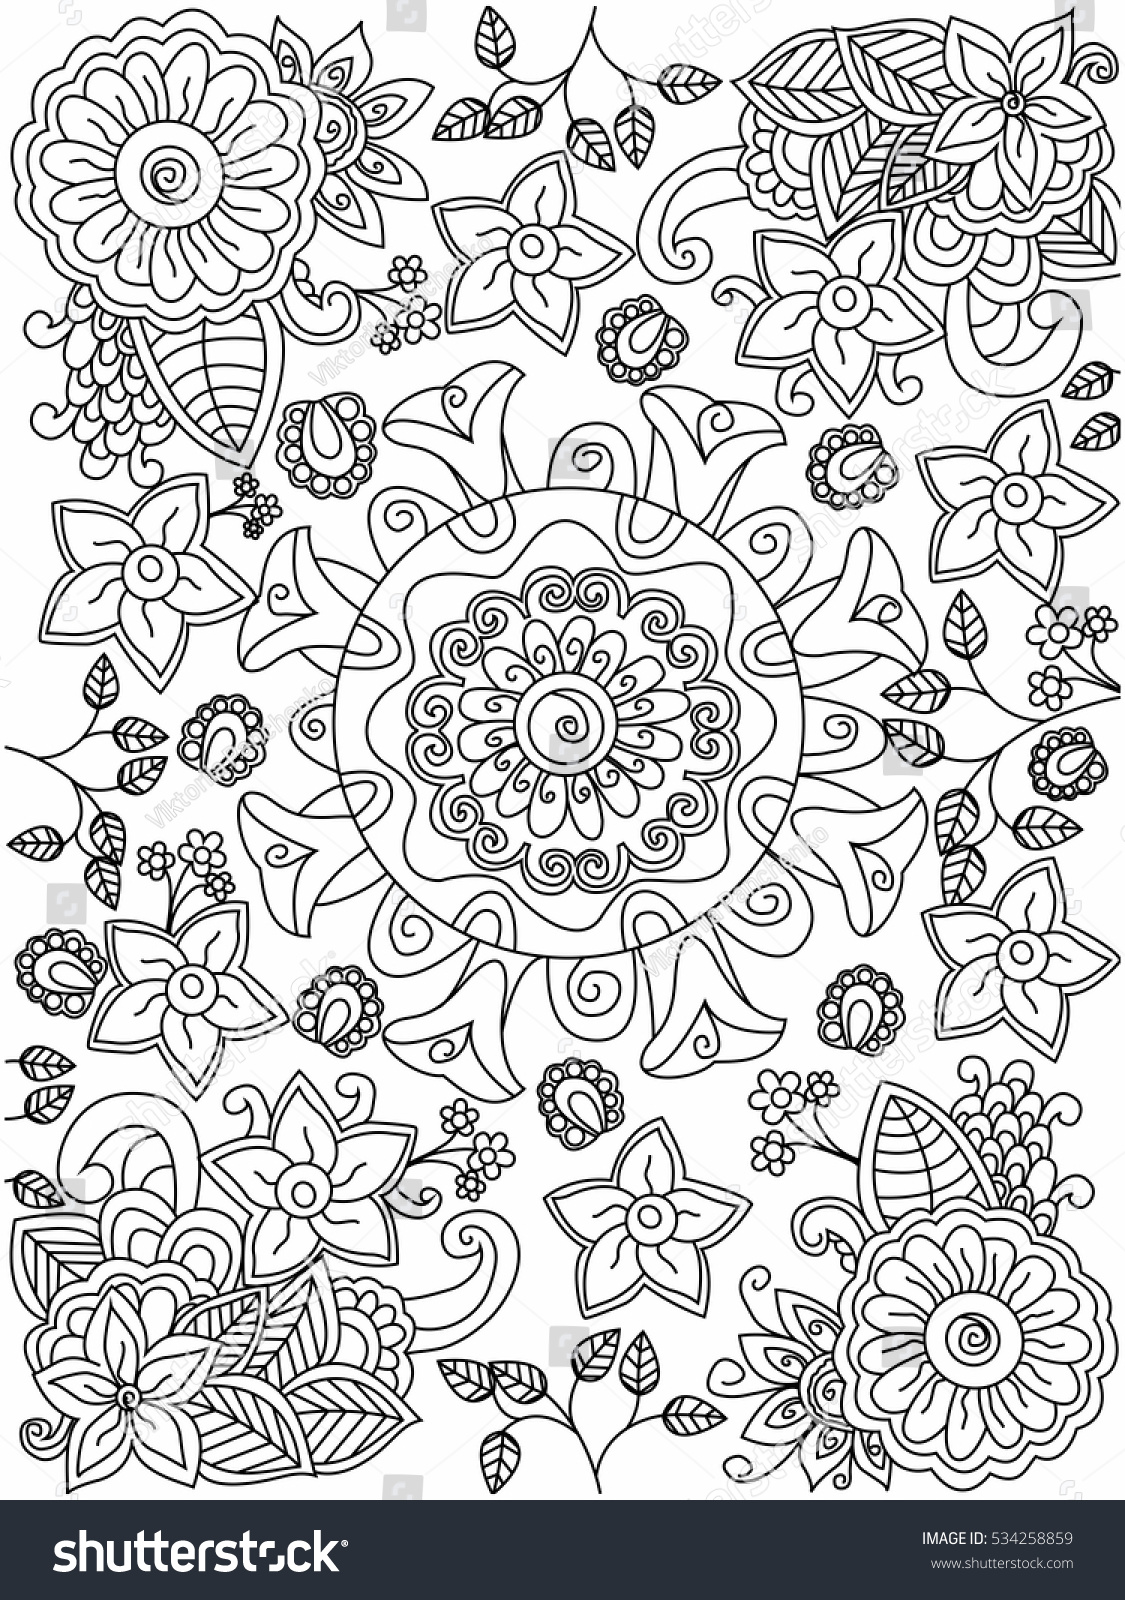 Stress coloring book for adults - Mandala Flower Coloring Book For Adults Vector Illustration Anti Stress Coloring For Adult